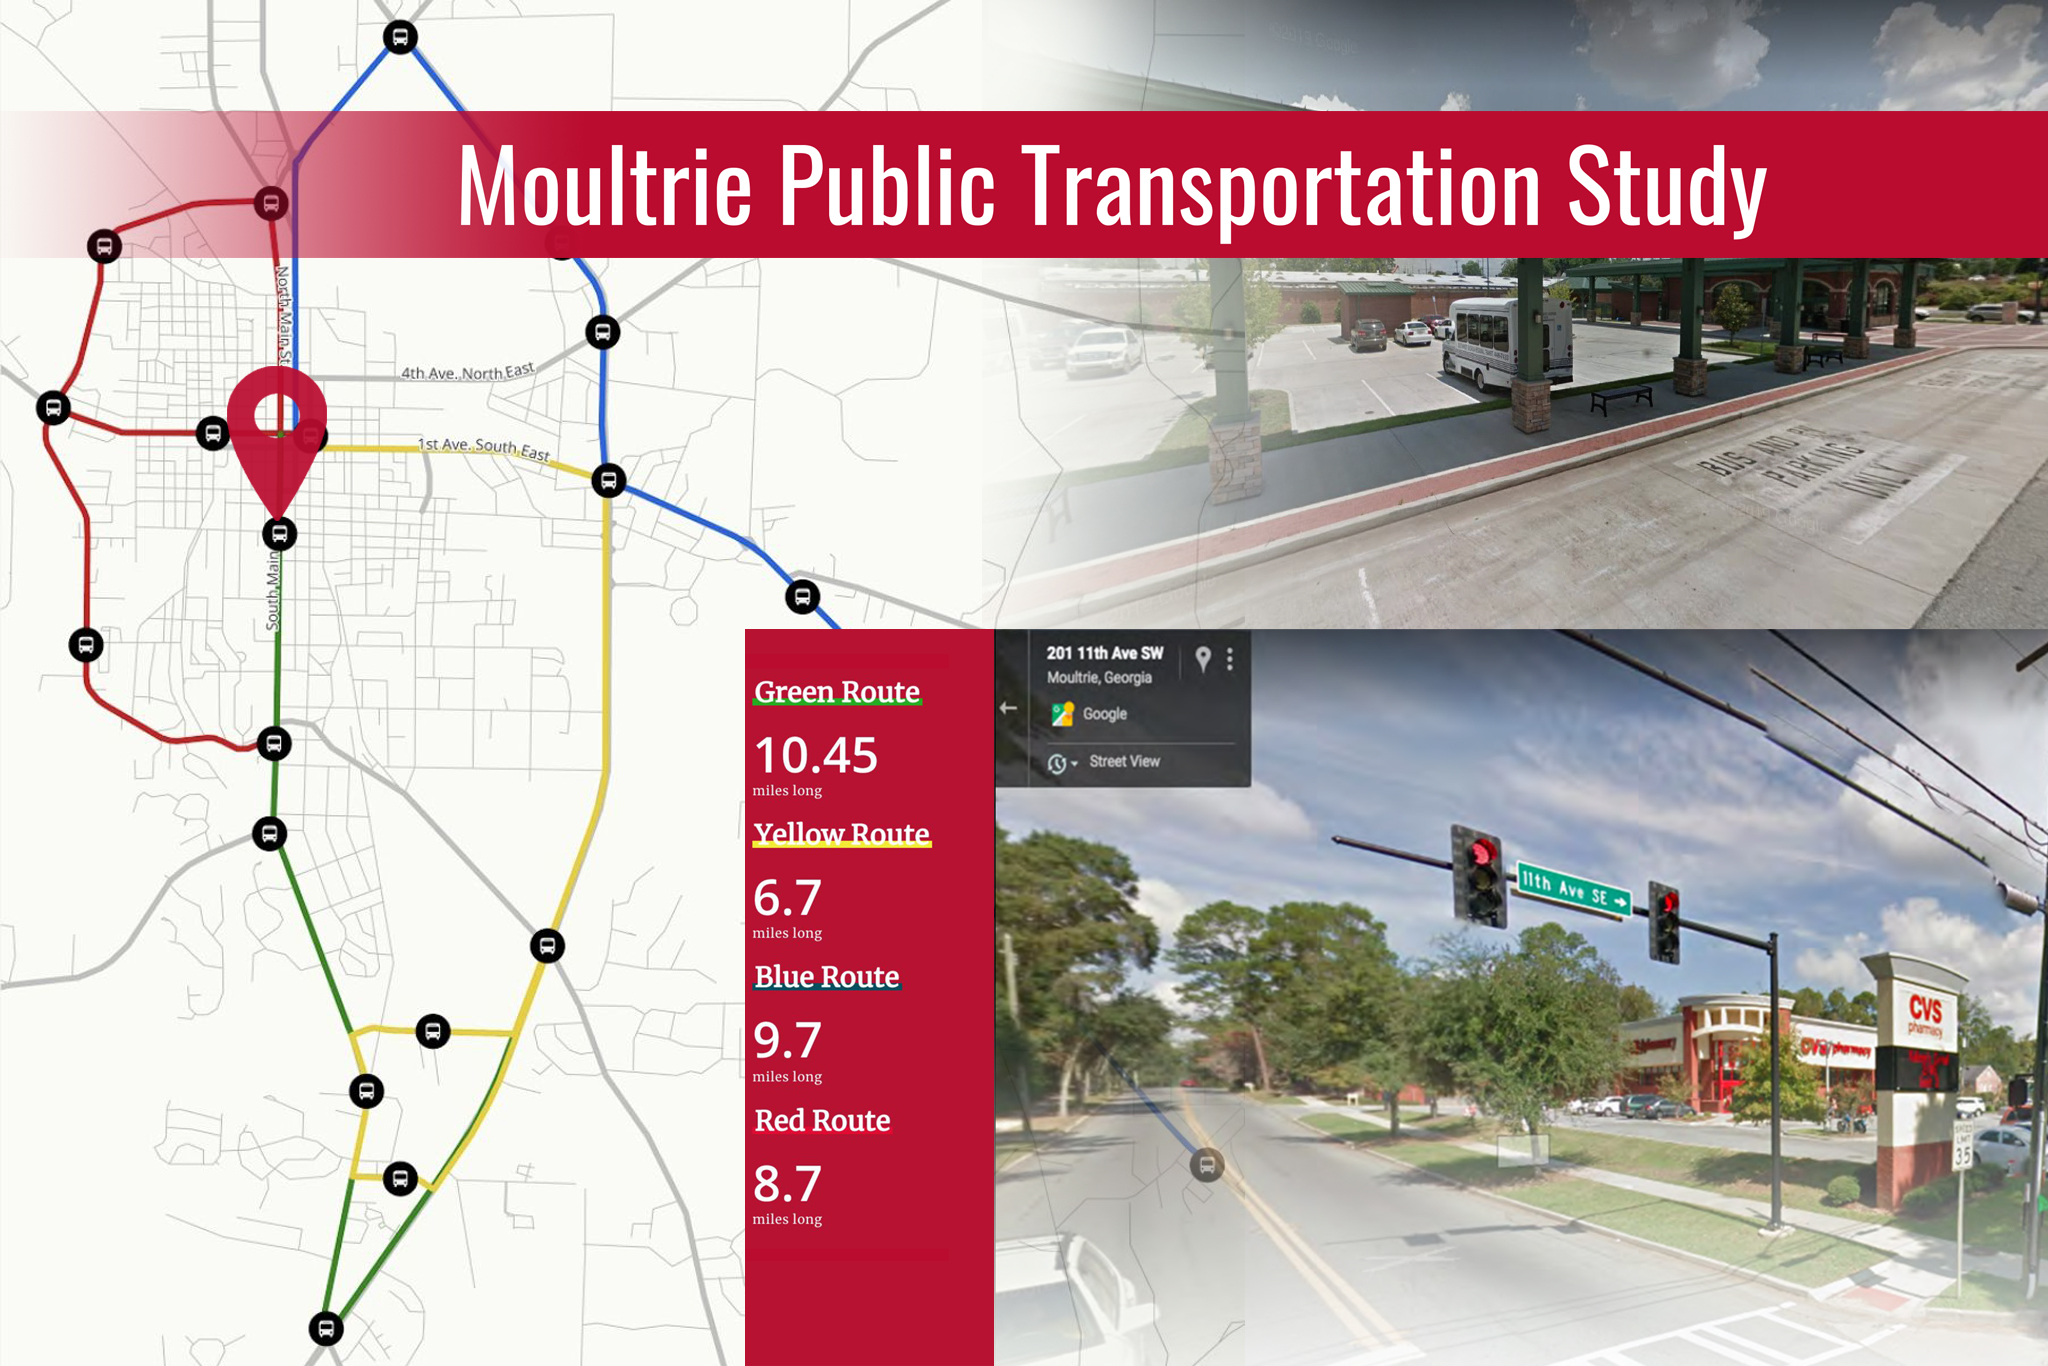 A graphic showing parts of the Moultrie Public Transportation Study